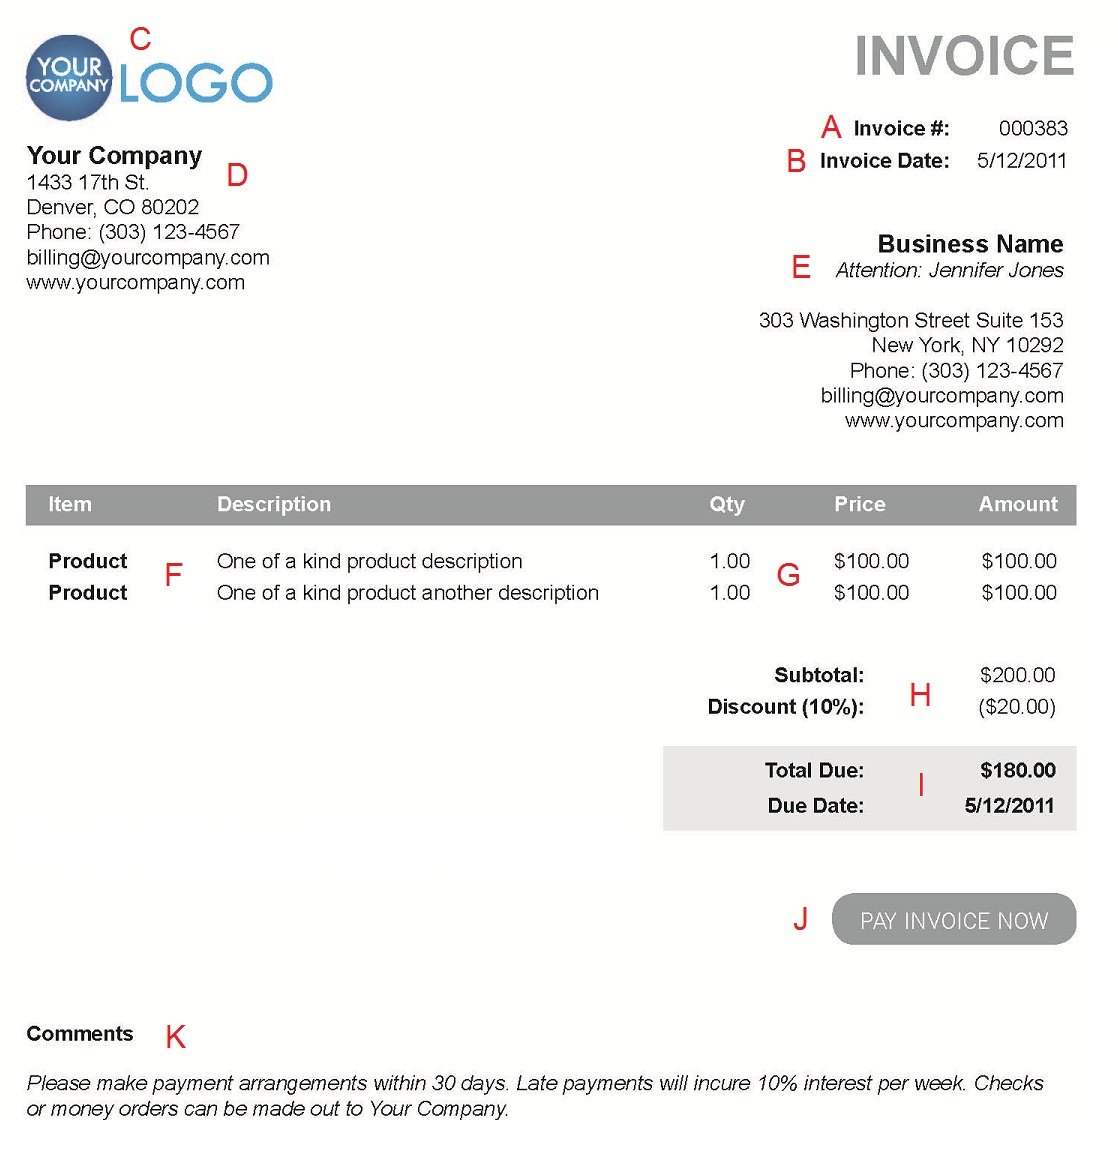 Sexygirlswallpapersus  Nice The  Different Sections Of An Electronic Payment Invoice With Fascinating A  With Charming Invoice Means What Also Vat Invoice Sample In Addition Software For Invoicing And Rbs Invoice Finance Login As Well As What Does A Pro Forma Invoice Mean Additionally Cost To Process An Invoice From Paysimplecom With Sexygirlswallpapersus  Fascinating The  Different Sections Of An Electronic Payment Invoice With Charming A  And Nice Invoice Means What Also Vat Invoice Sample In Addition Software For Invoicing From Paysimplecom